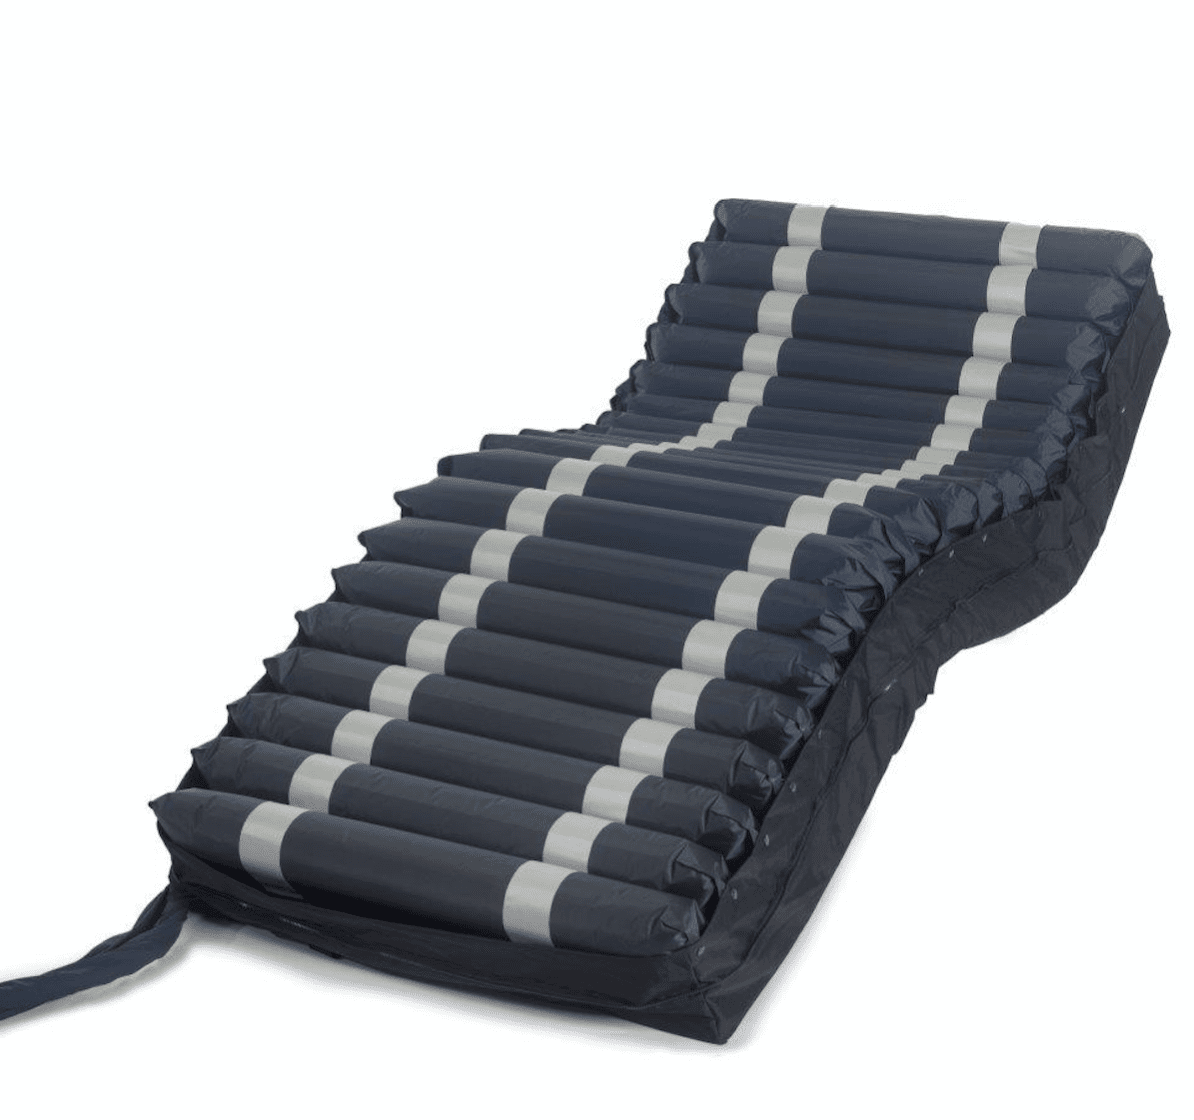 Stage 4 Hospital Air Mattress Pro6